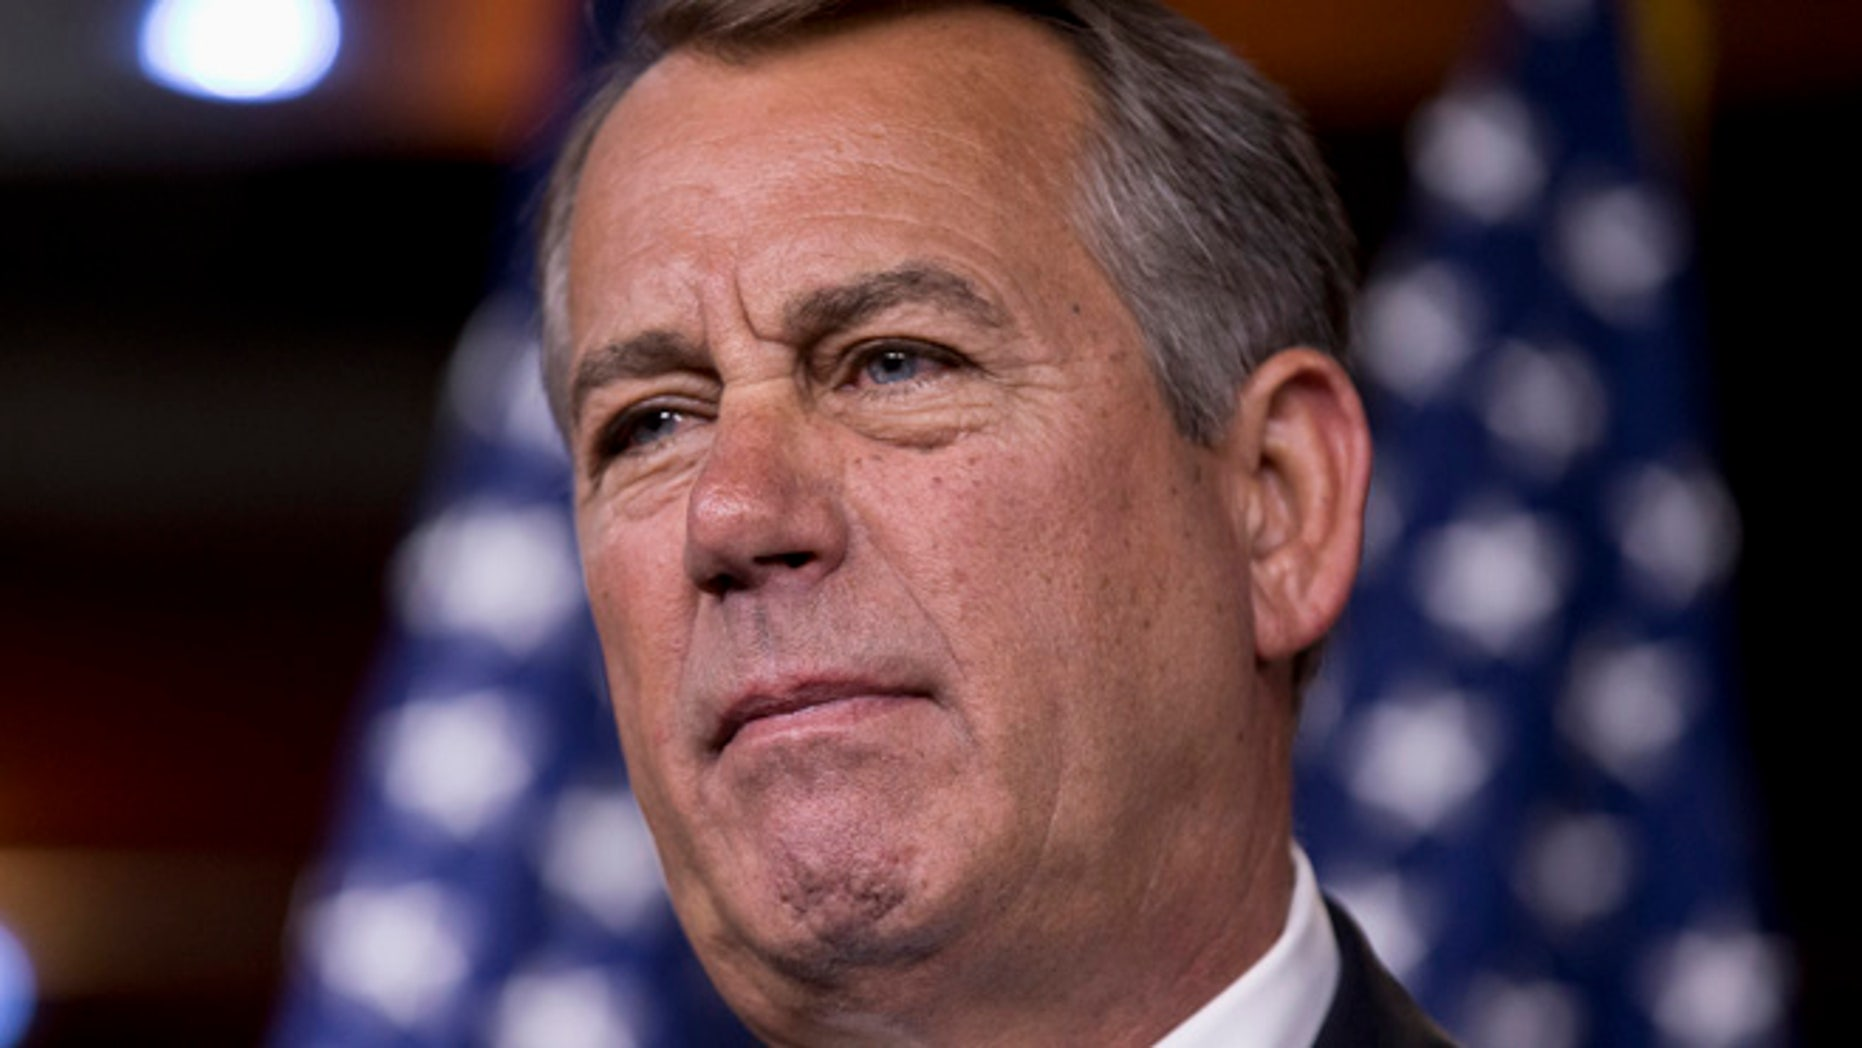 Aug. 1, 2013: House Speaker John Boehner takes questions from reporters at a Capitol Hill news conference.